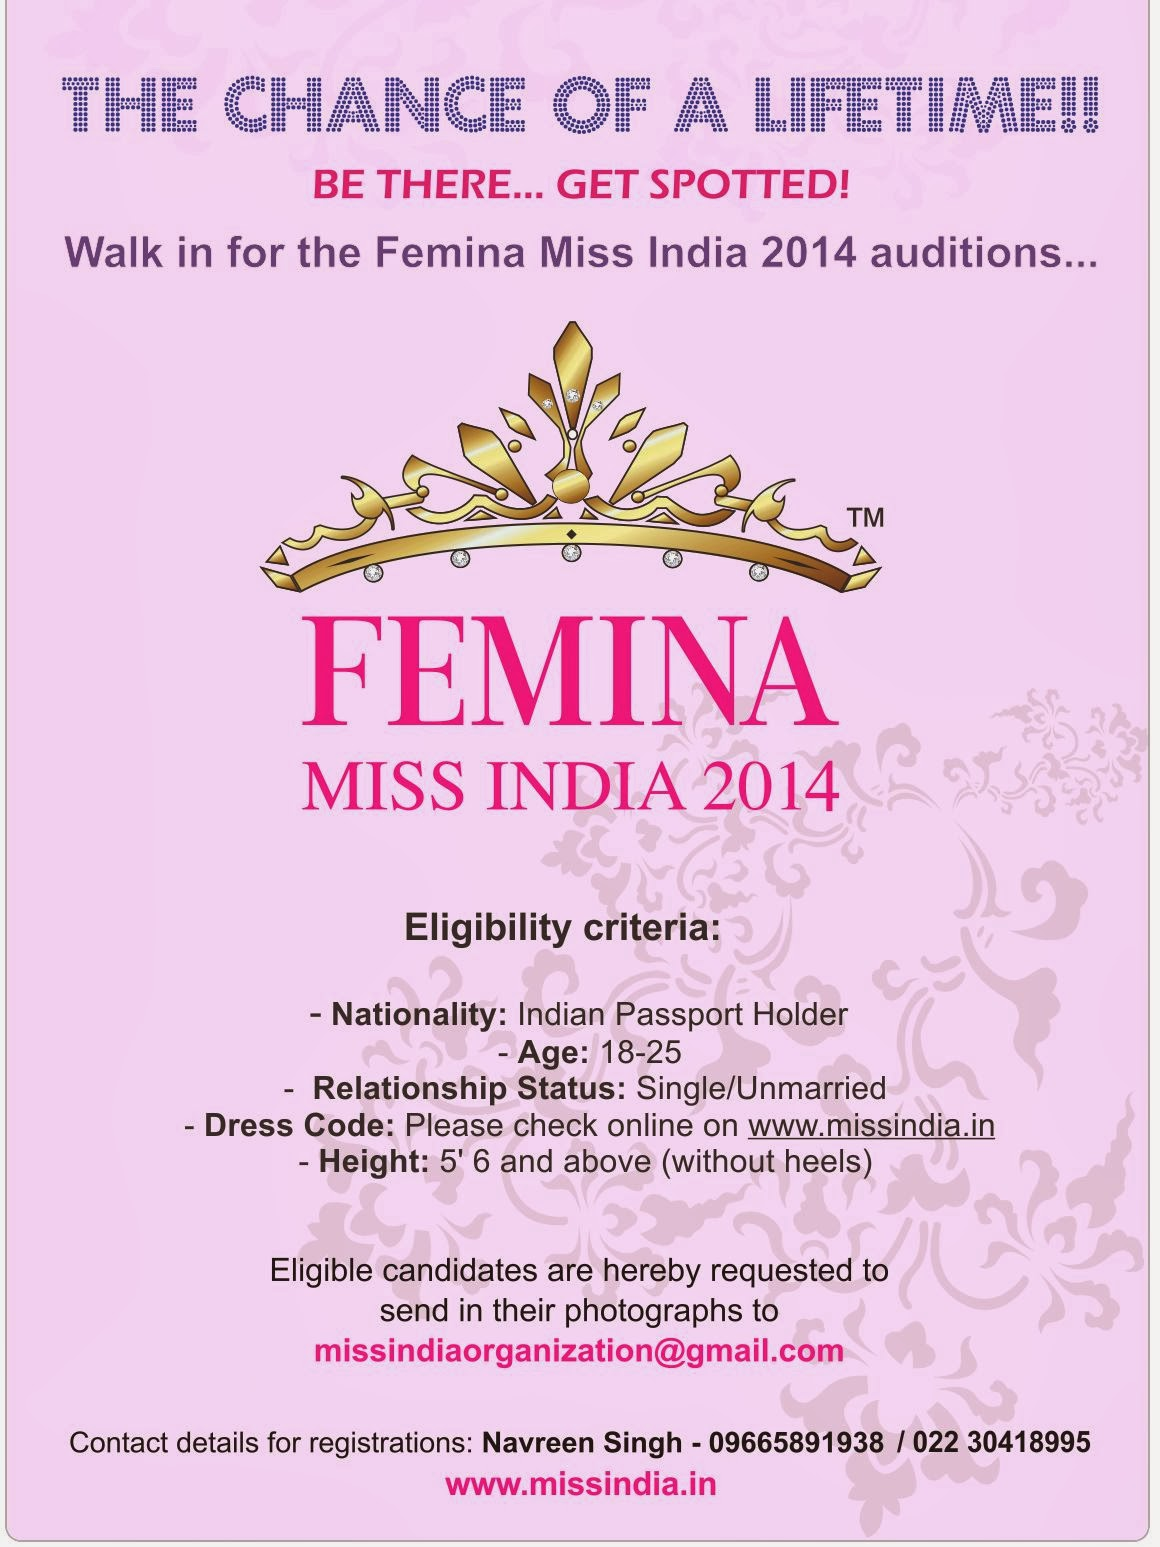 inspiring you to inspire femina miss contest is considered as the most prestigious beauty pageant in that provides a platform to the young and aspiring girls to be a